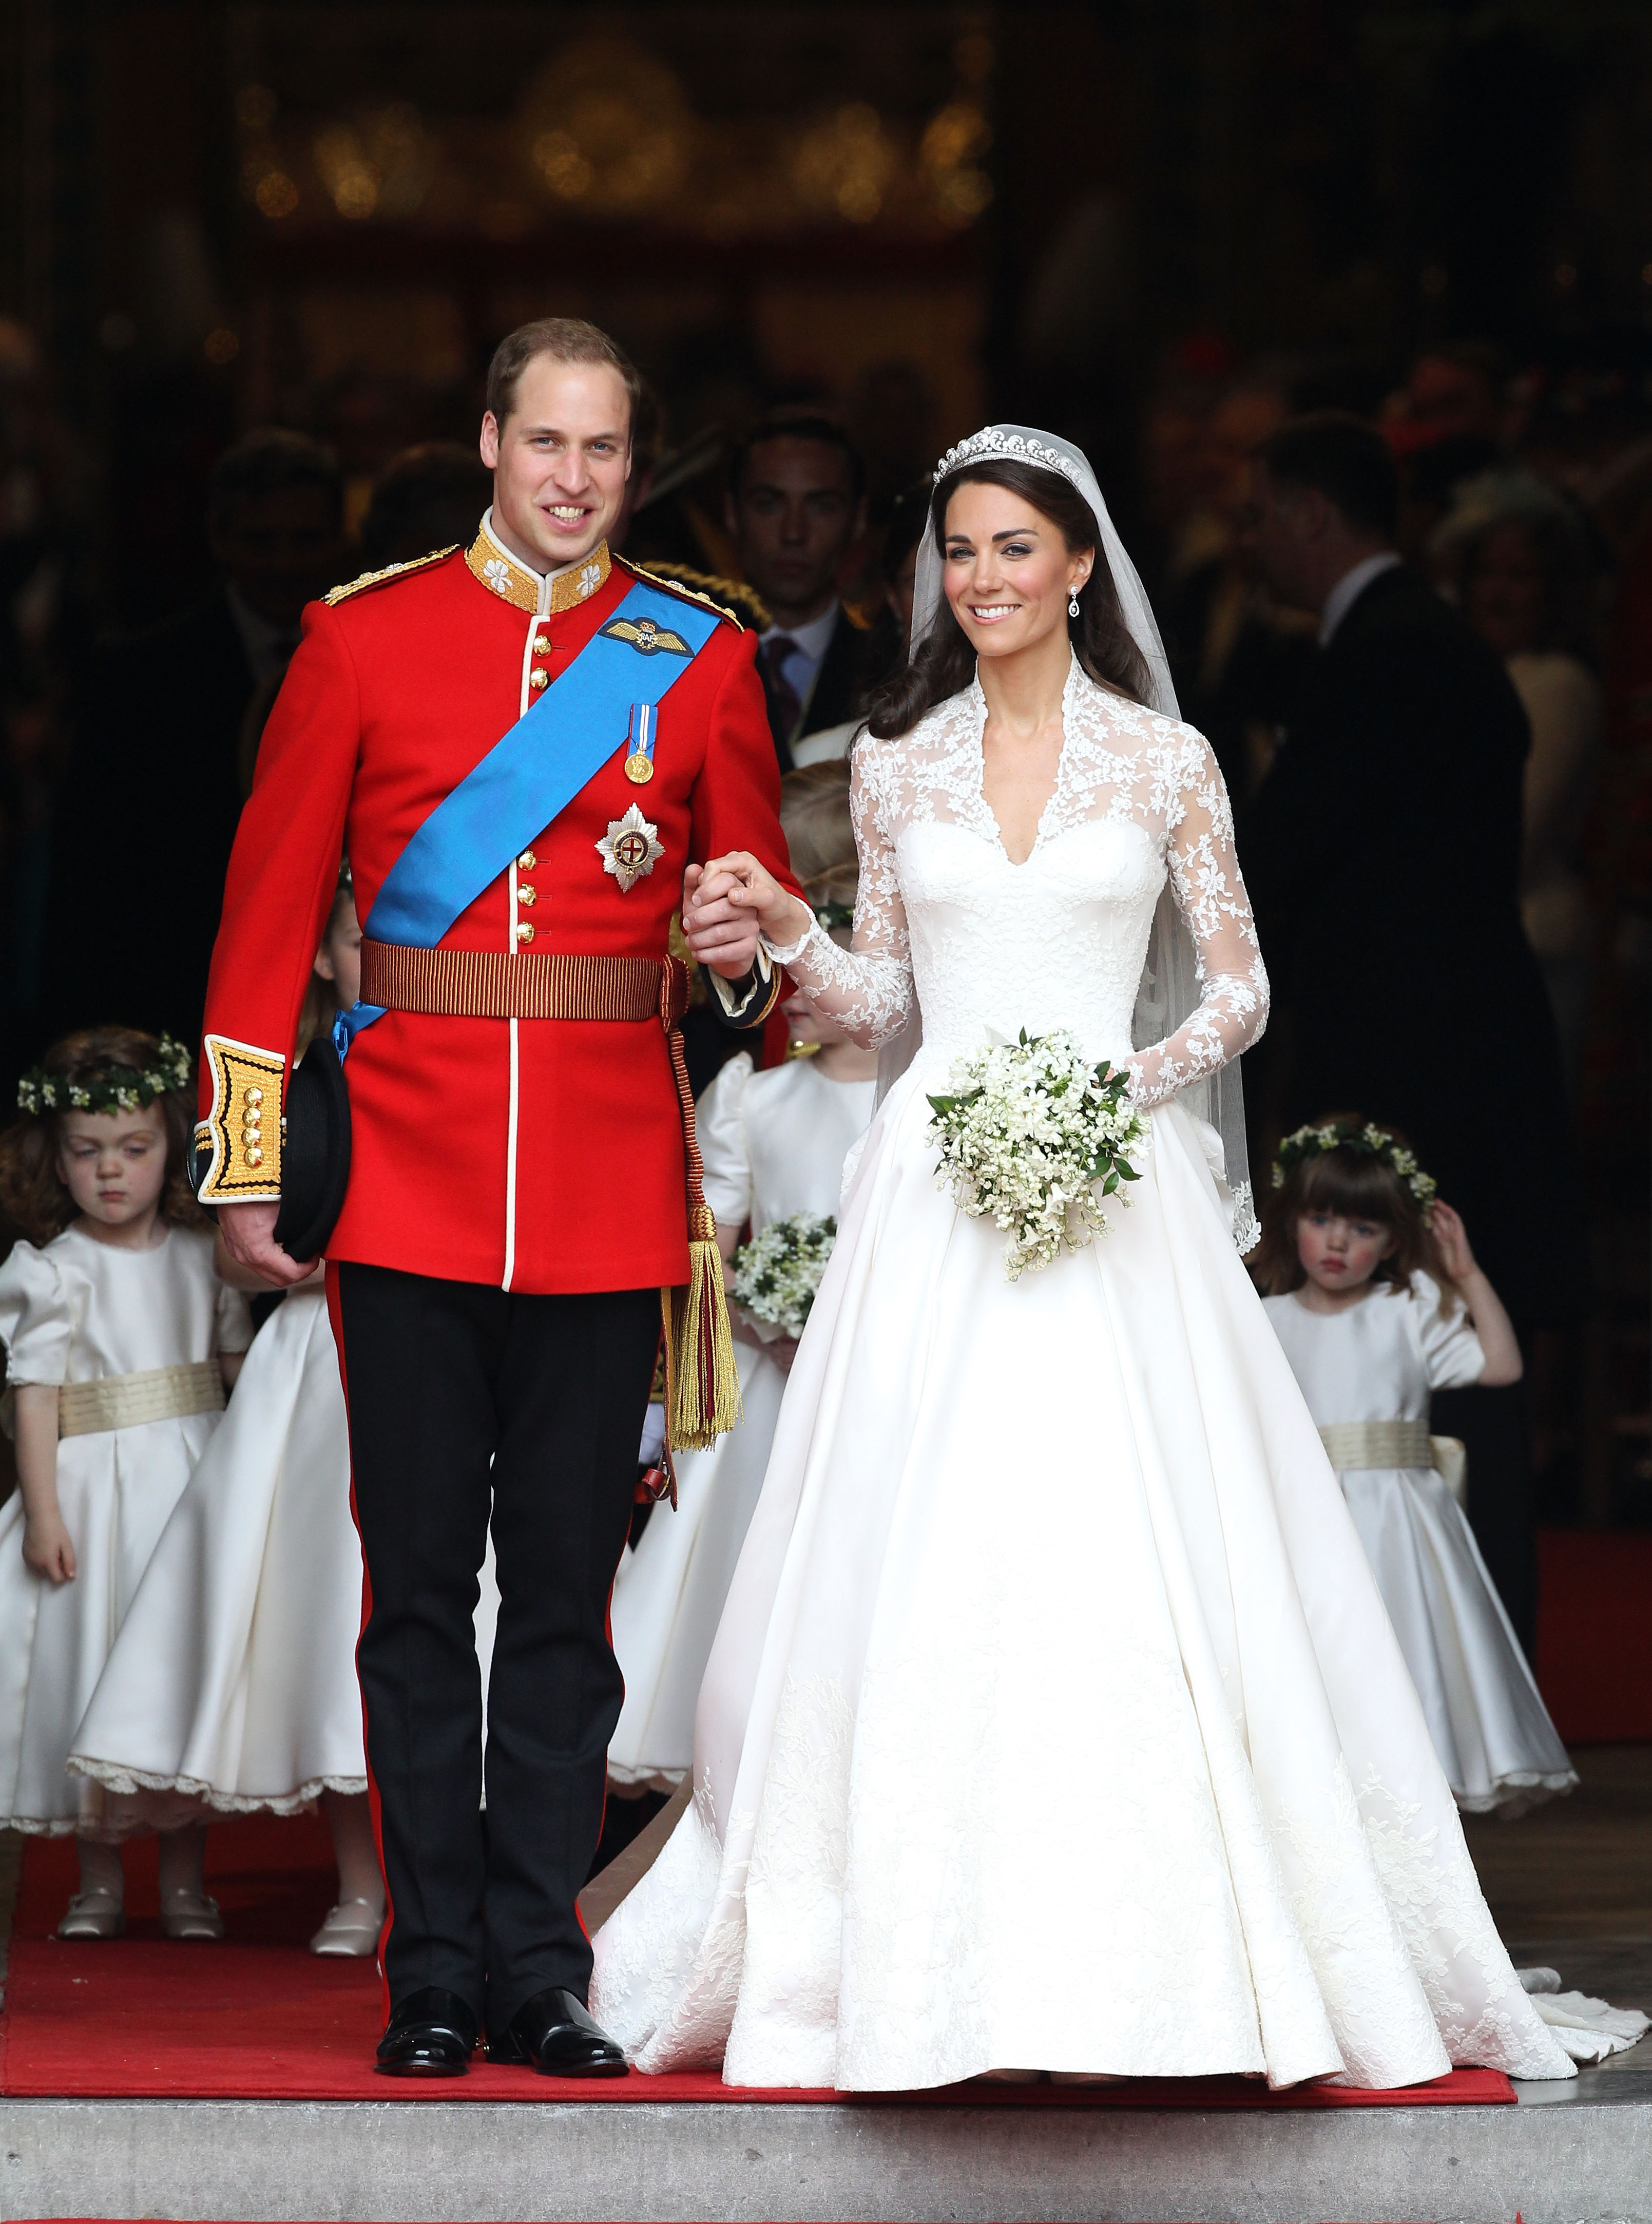 Prince William, Duke of Cambridge and Catherine, Duchess of Cambridge smile following their marriage at Westminster Abbey on April 29, 2011 in London, Englandcle and pageantry of the Royal Wedding. (Getty Images)